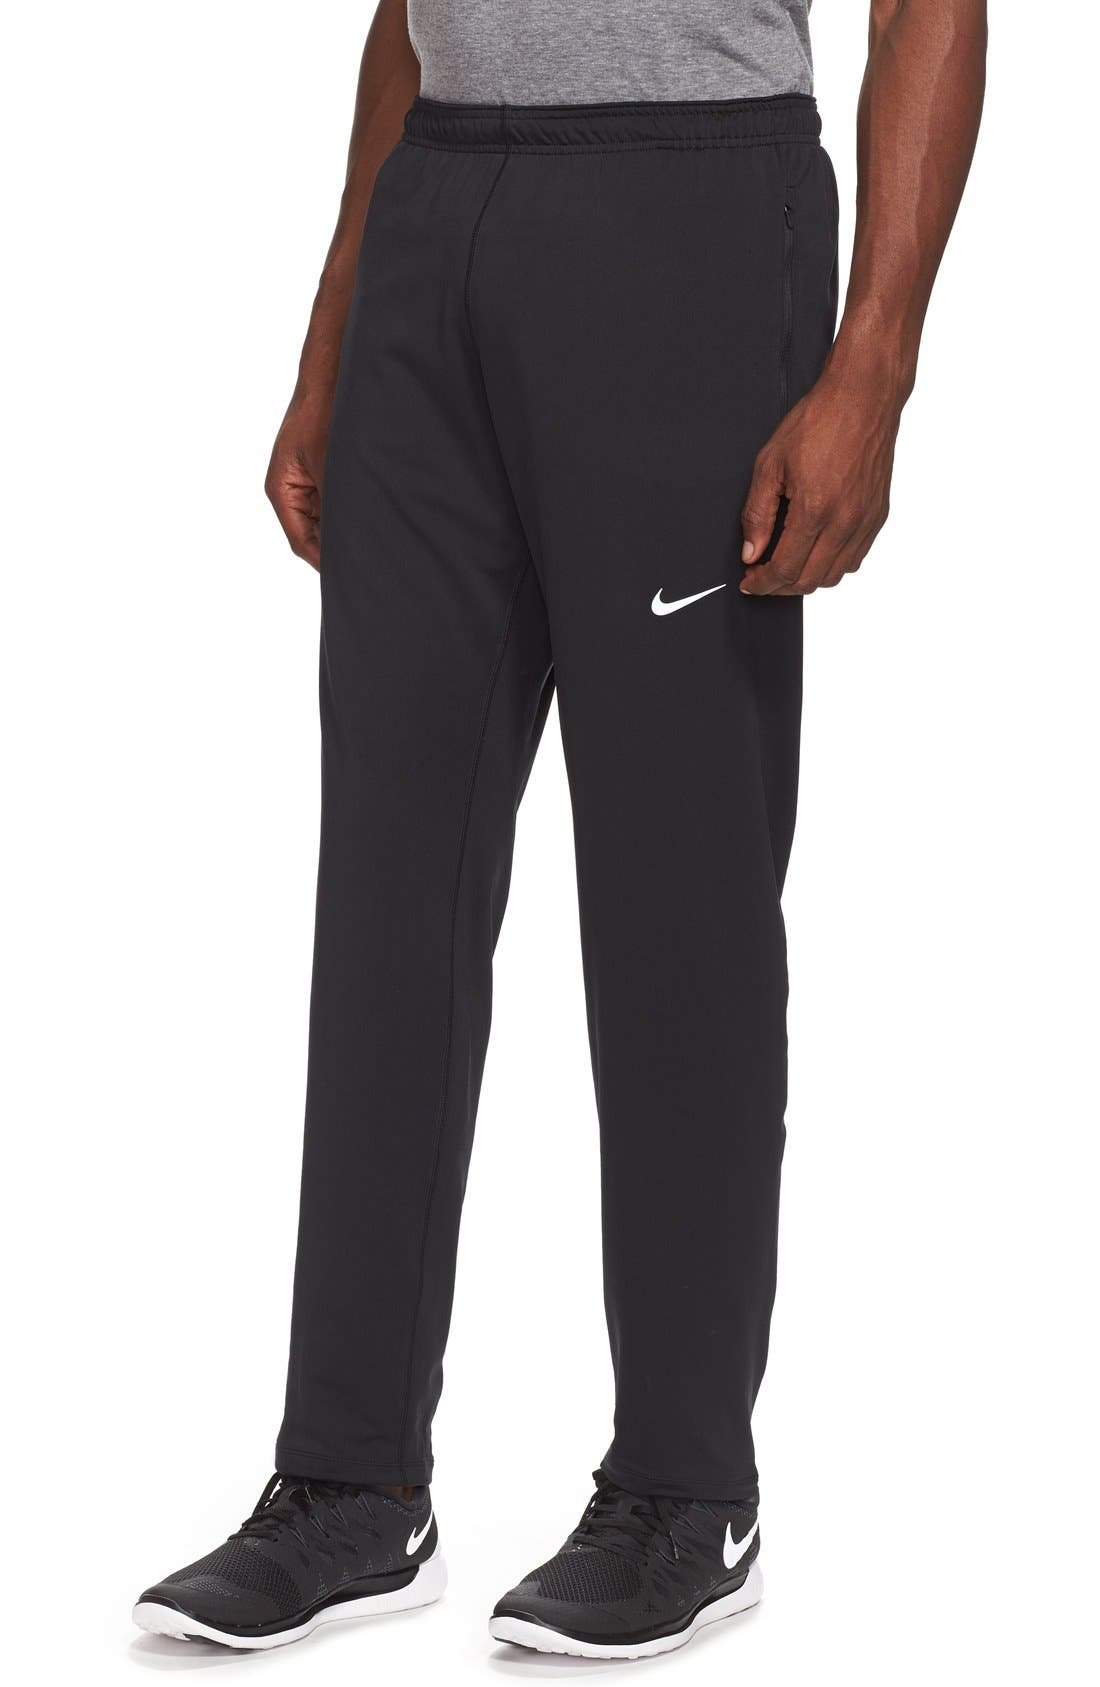 'Y20' Tapered Fit Dri-FIT Running Stretch Pants,                             Main thumbnail 1, color,                             010